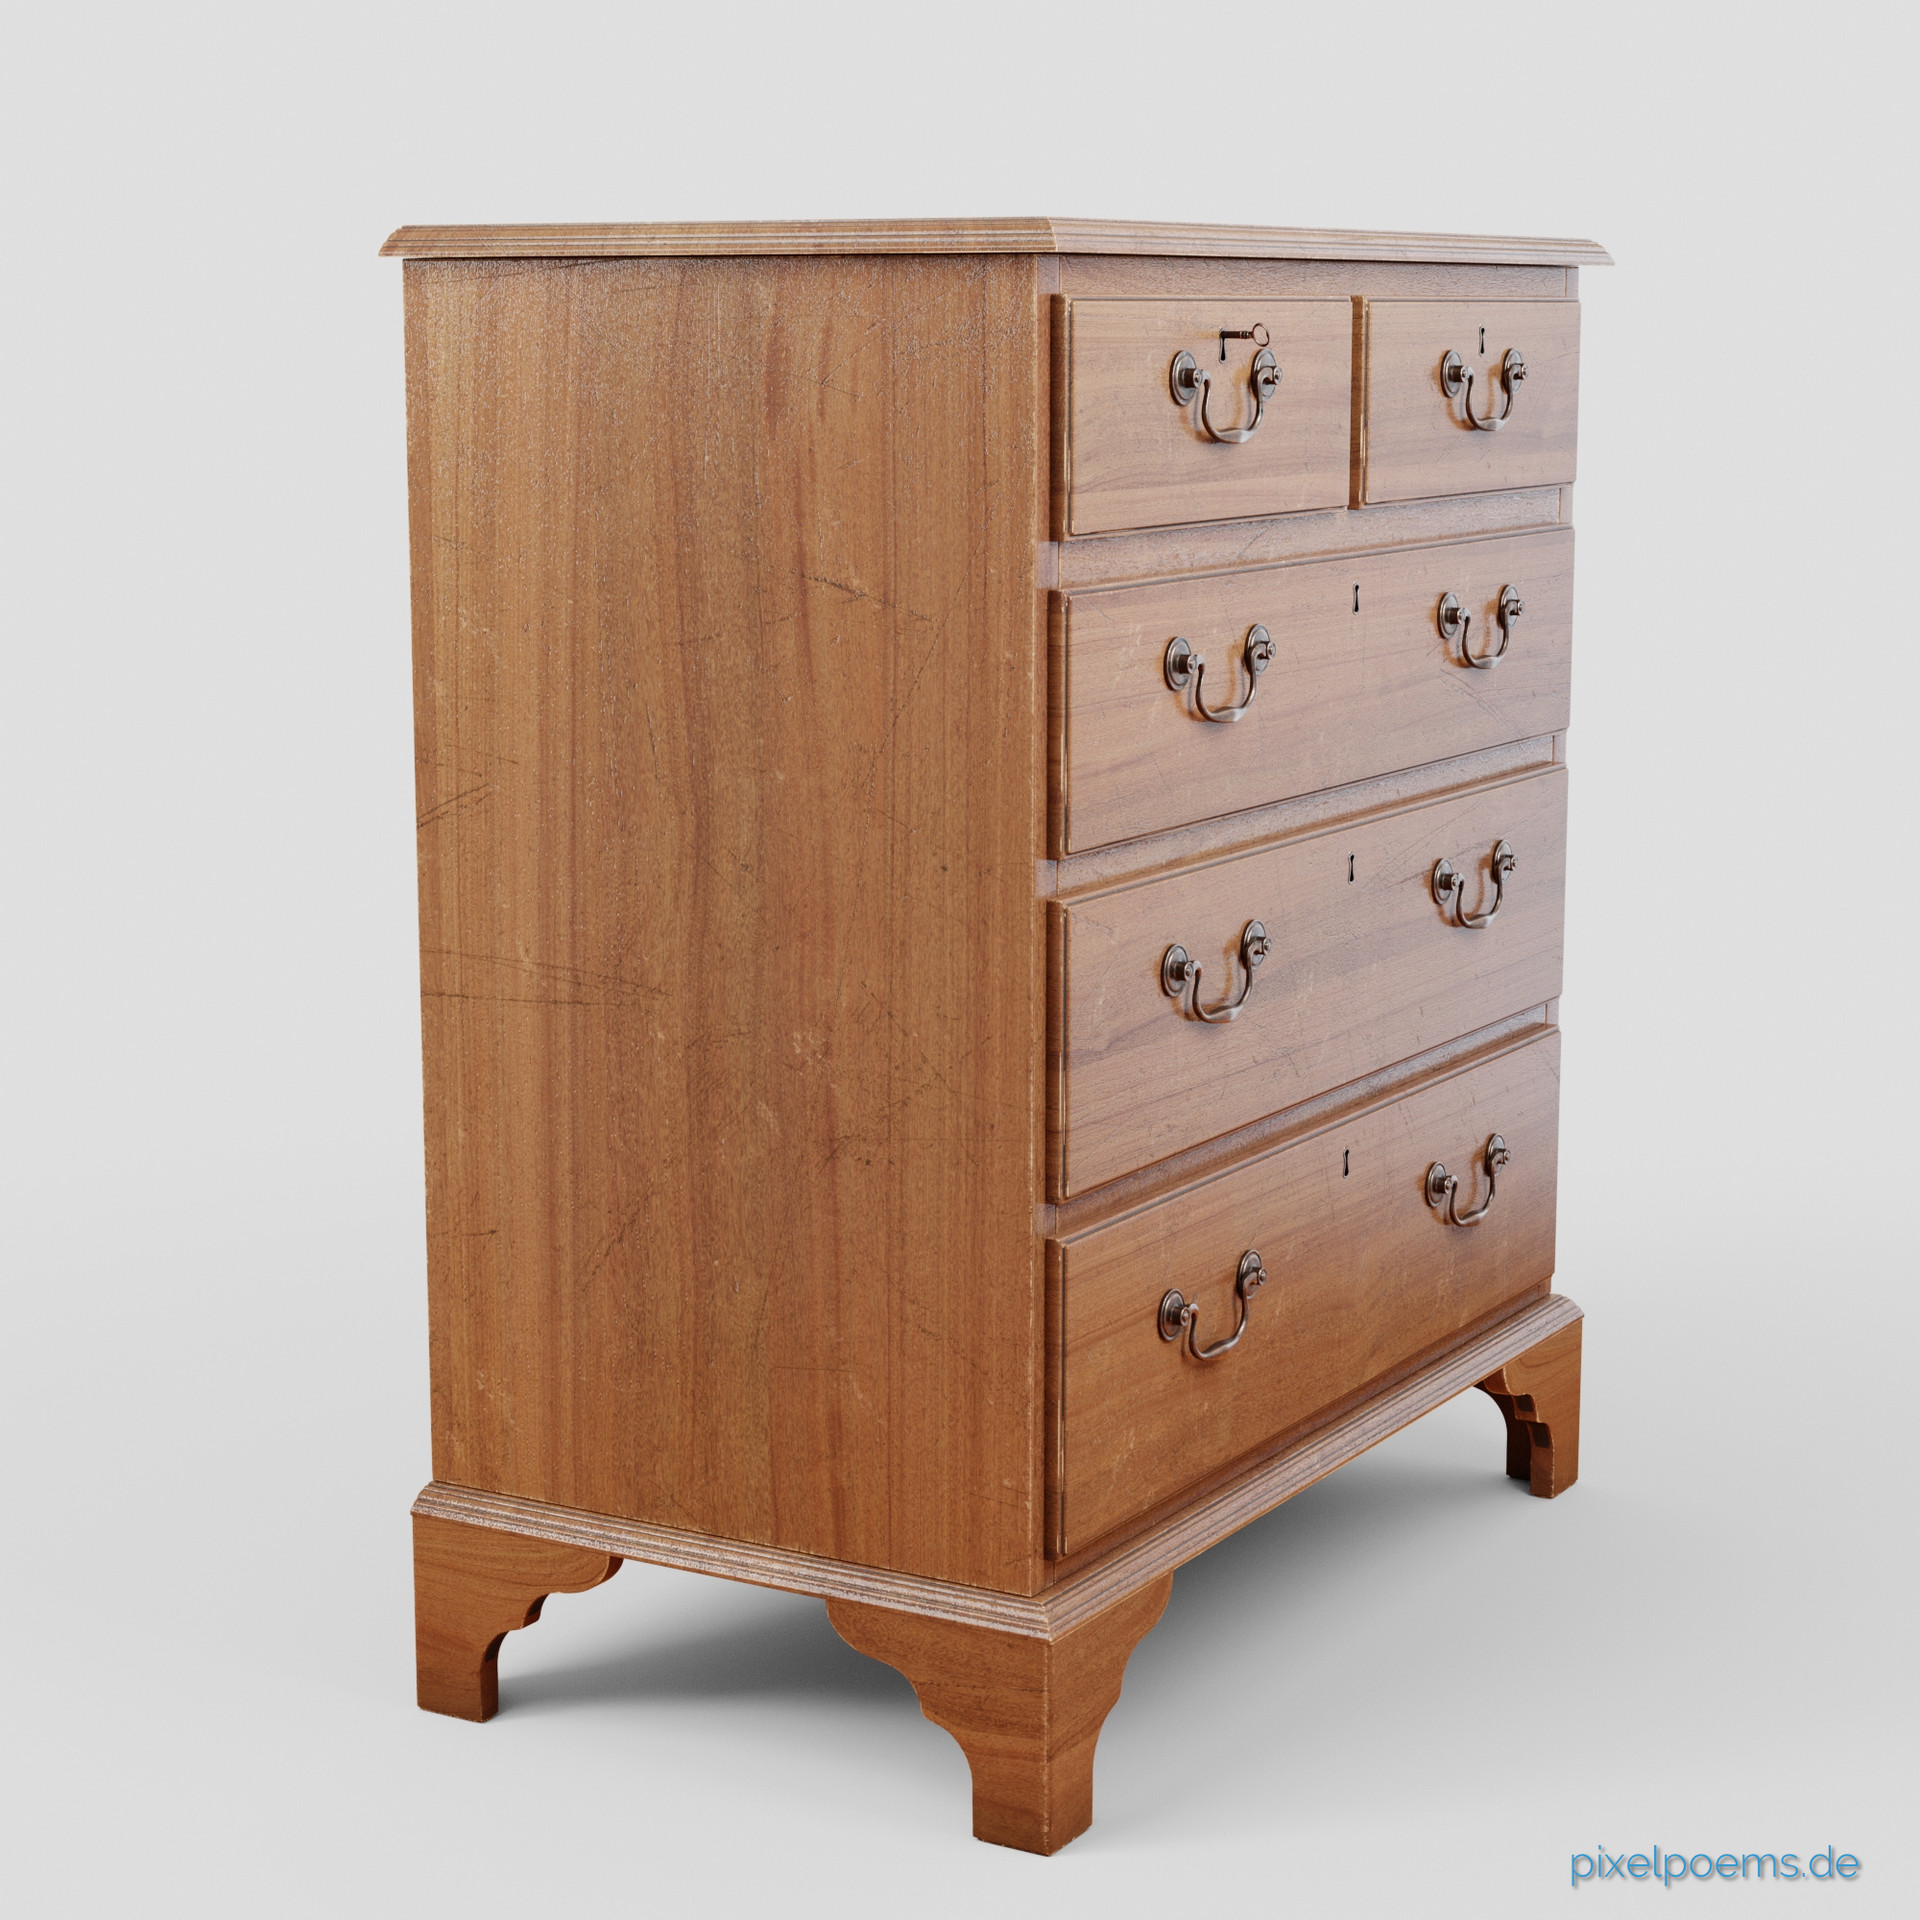 Karl andreas gross mahagony chest of drawers webversion 02